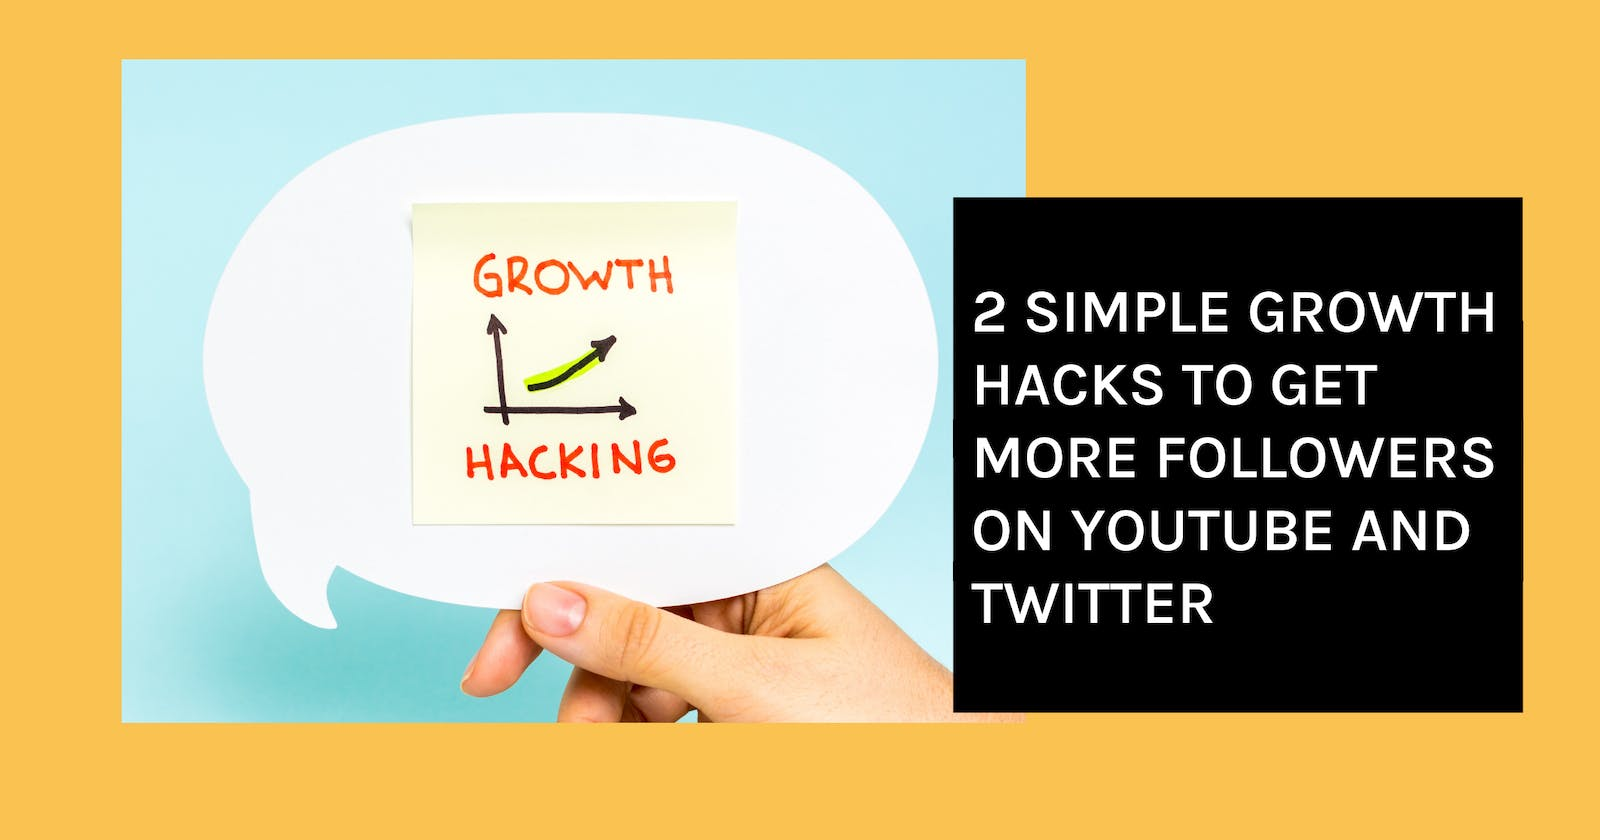 2 Simple Growth Hacks to Get More Followers on YouTube and Twitter